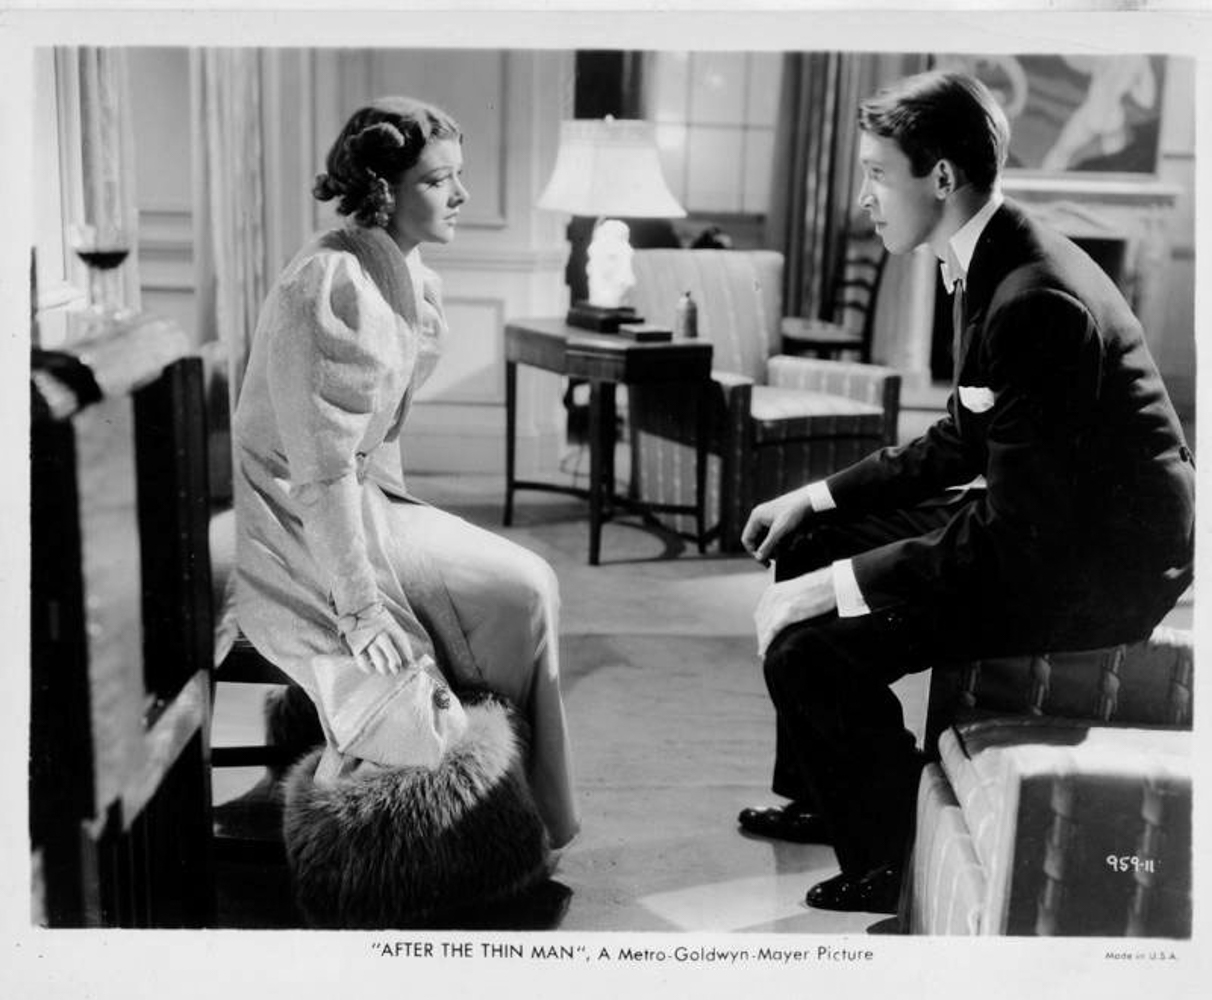 after the thin man 1936 scene still photo 959-11